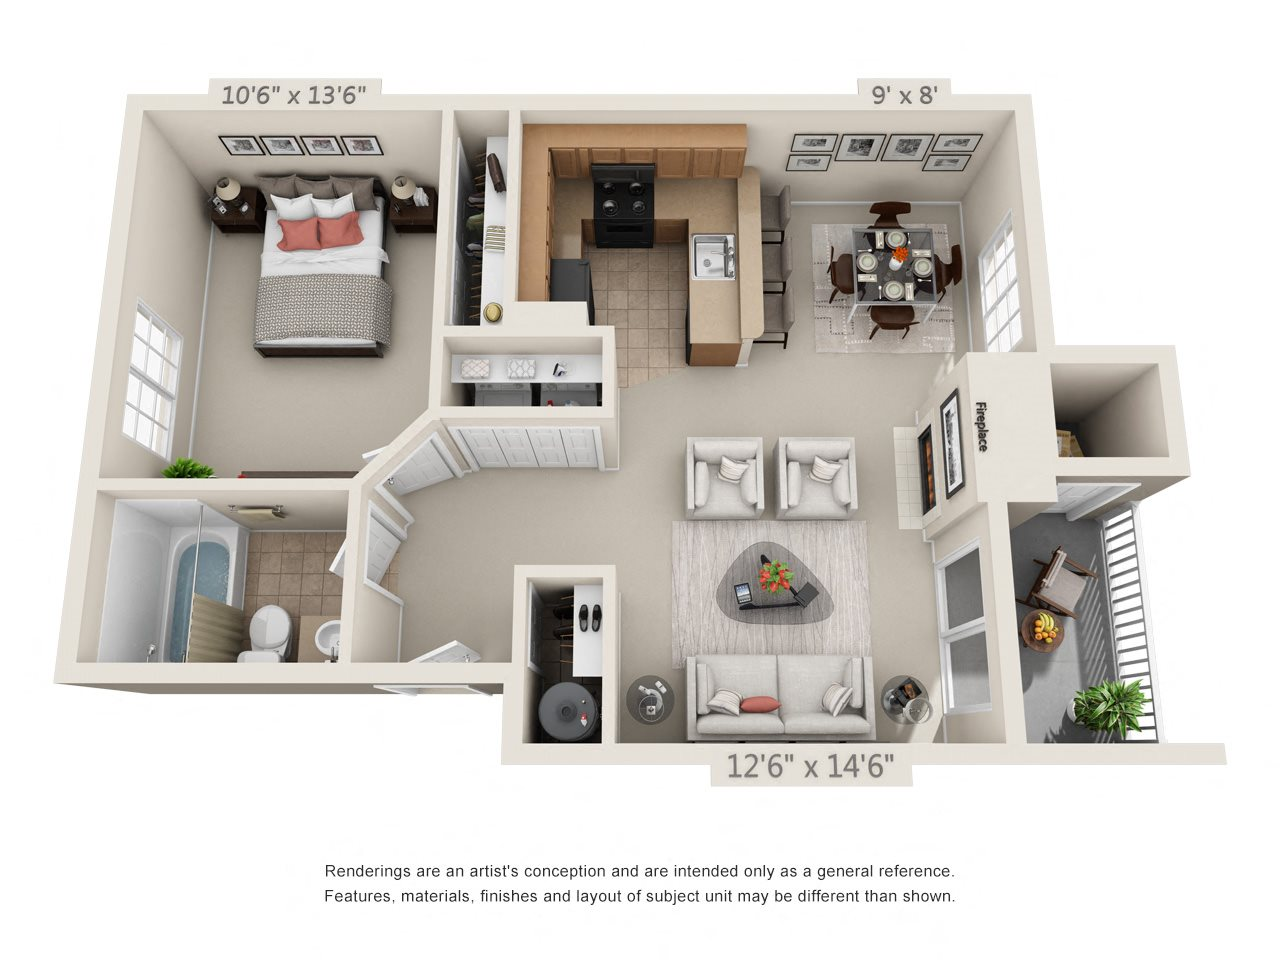 1 Bedroom 1 Bathroom - A3 Floor Plan 2